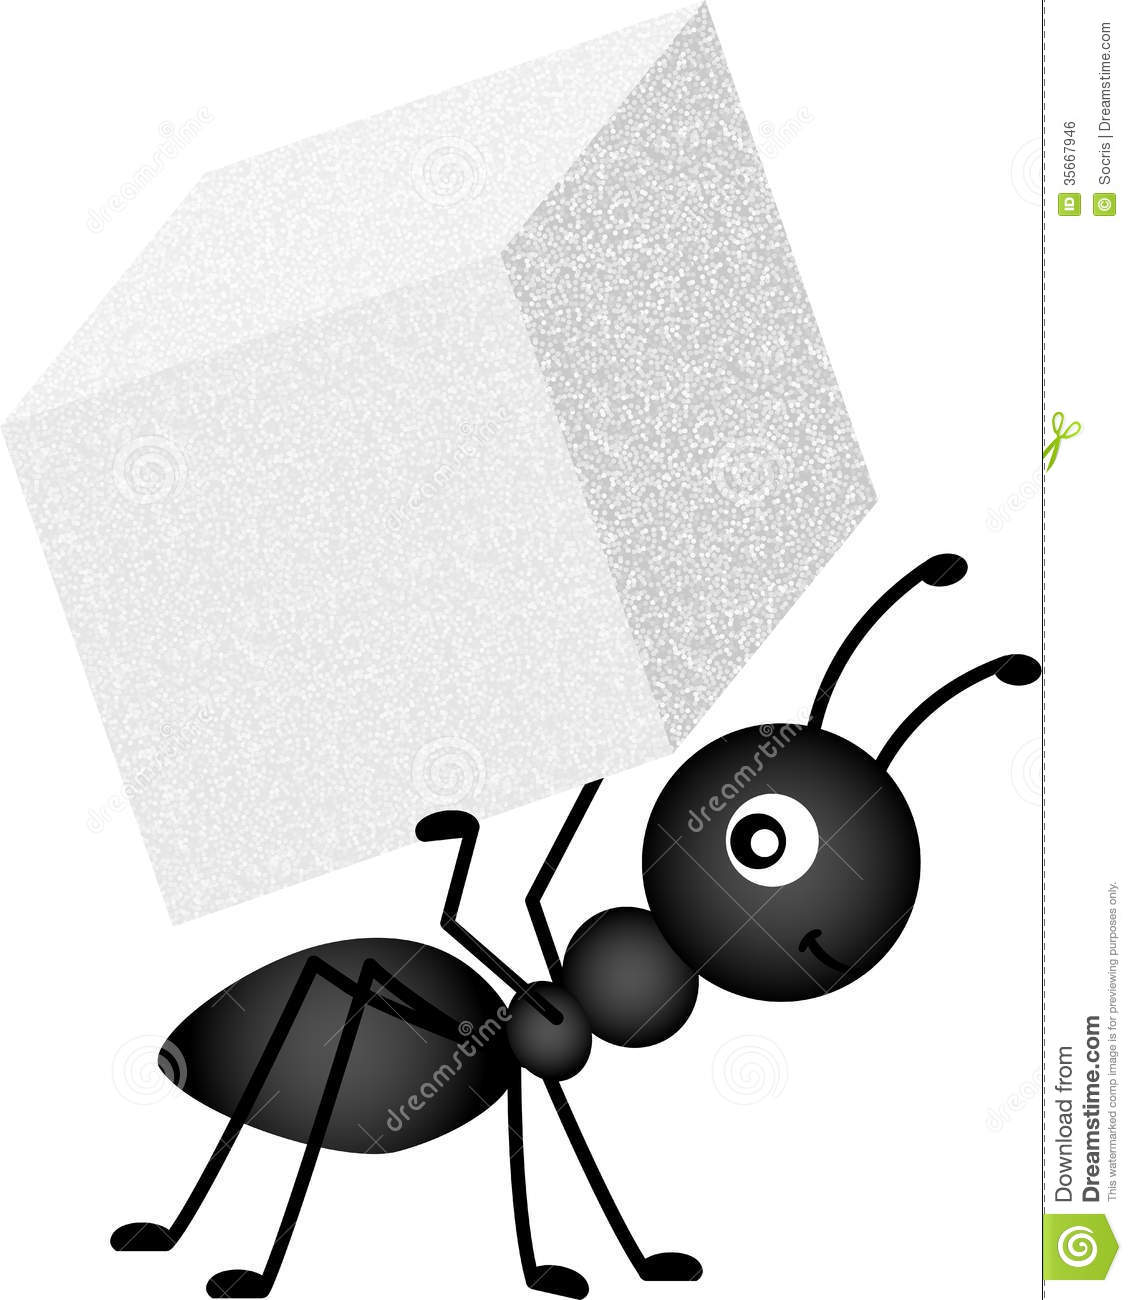 Ants clipart carry. Ant carrying sugar cube